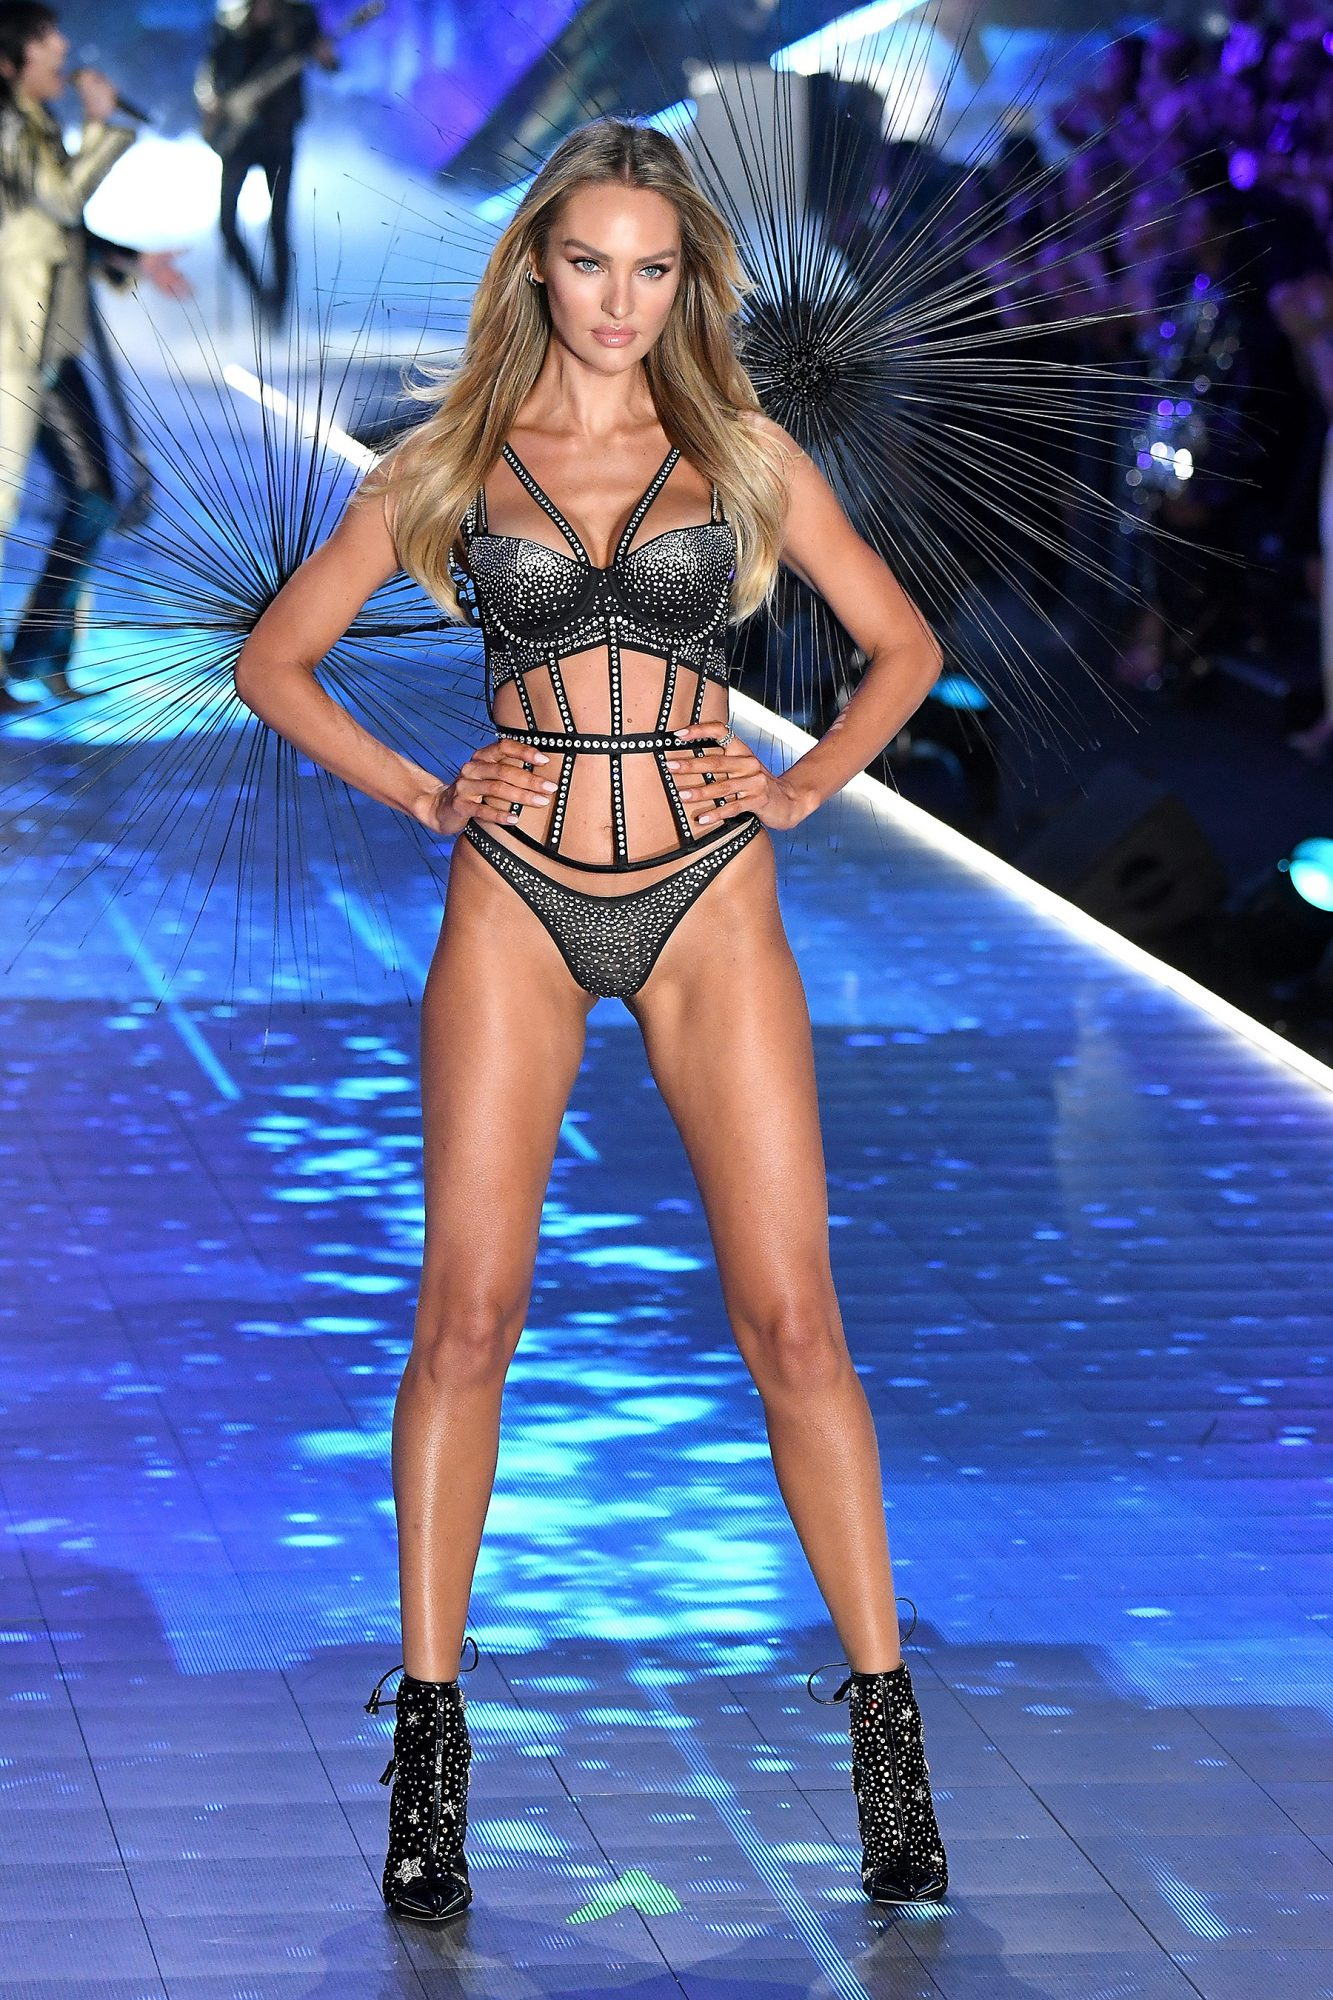 Candice Swanepoel on the catwalk